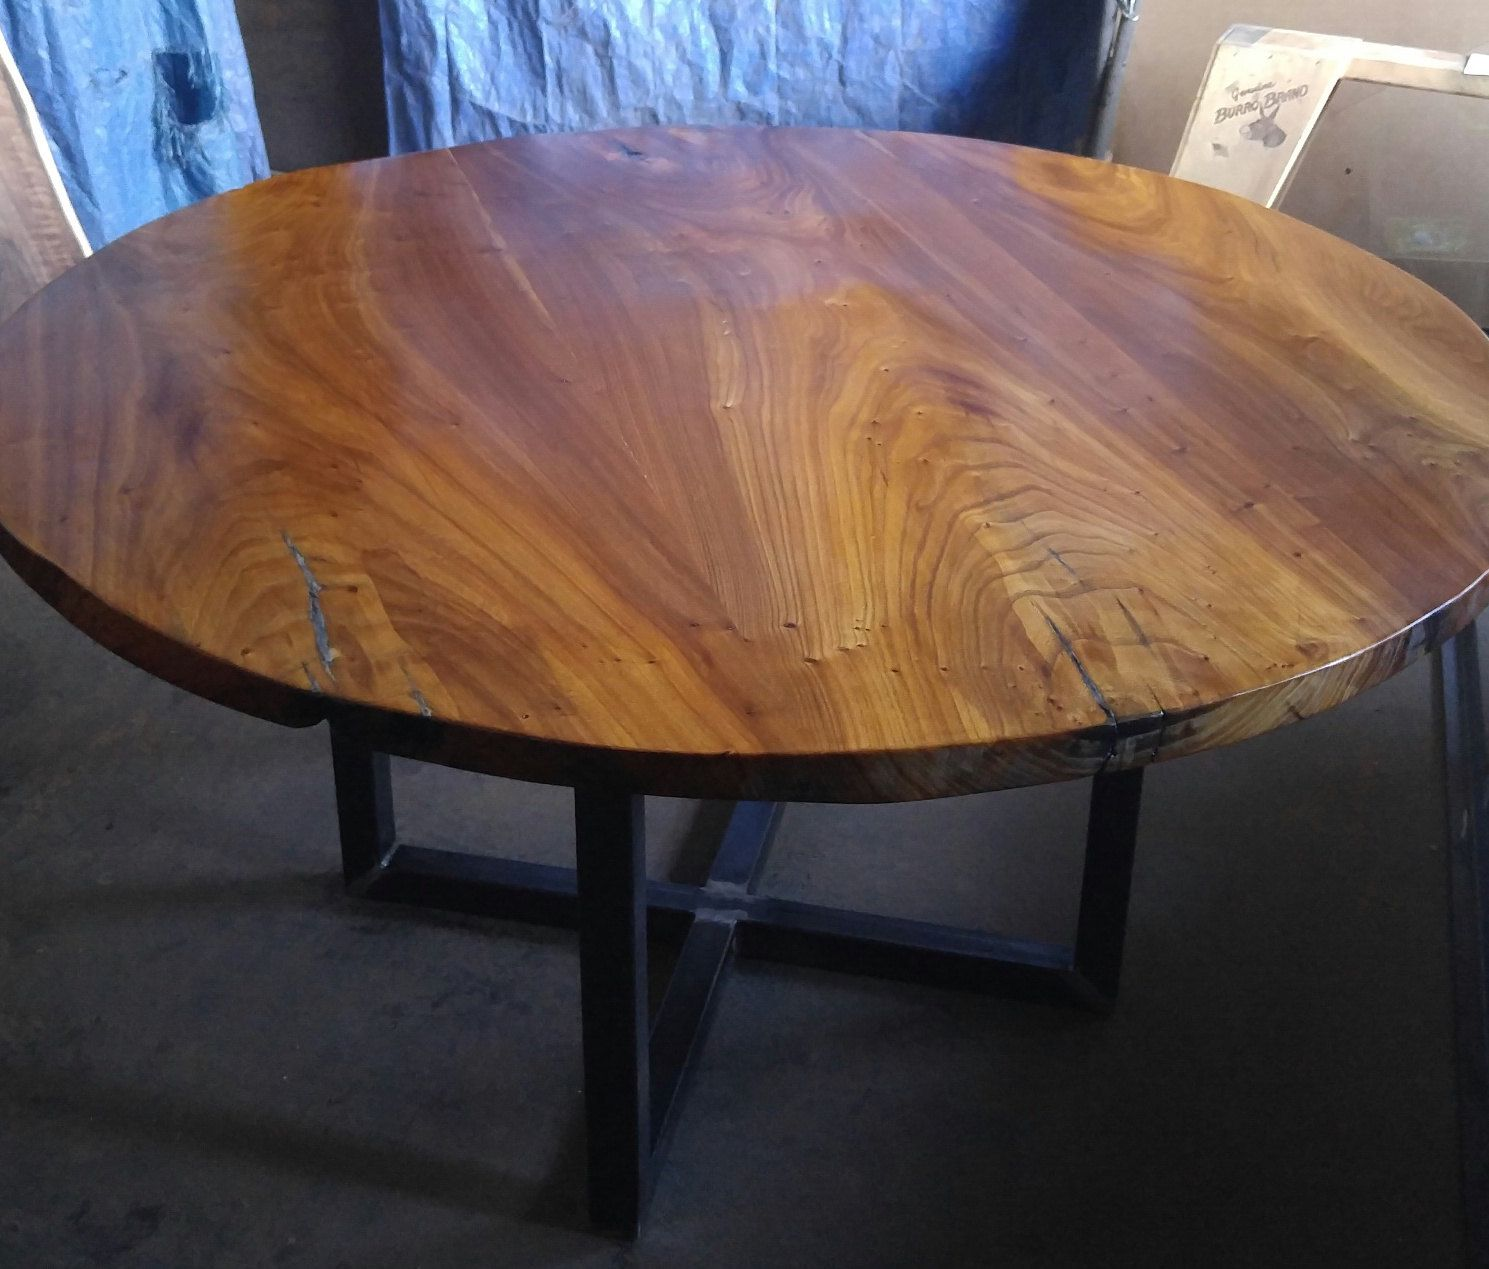 The Siberian Circle Table Top Round Table Dining Table Wood Table